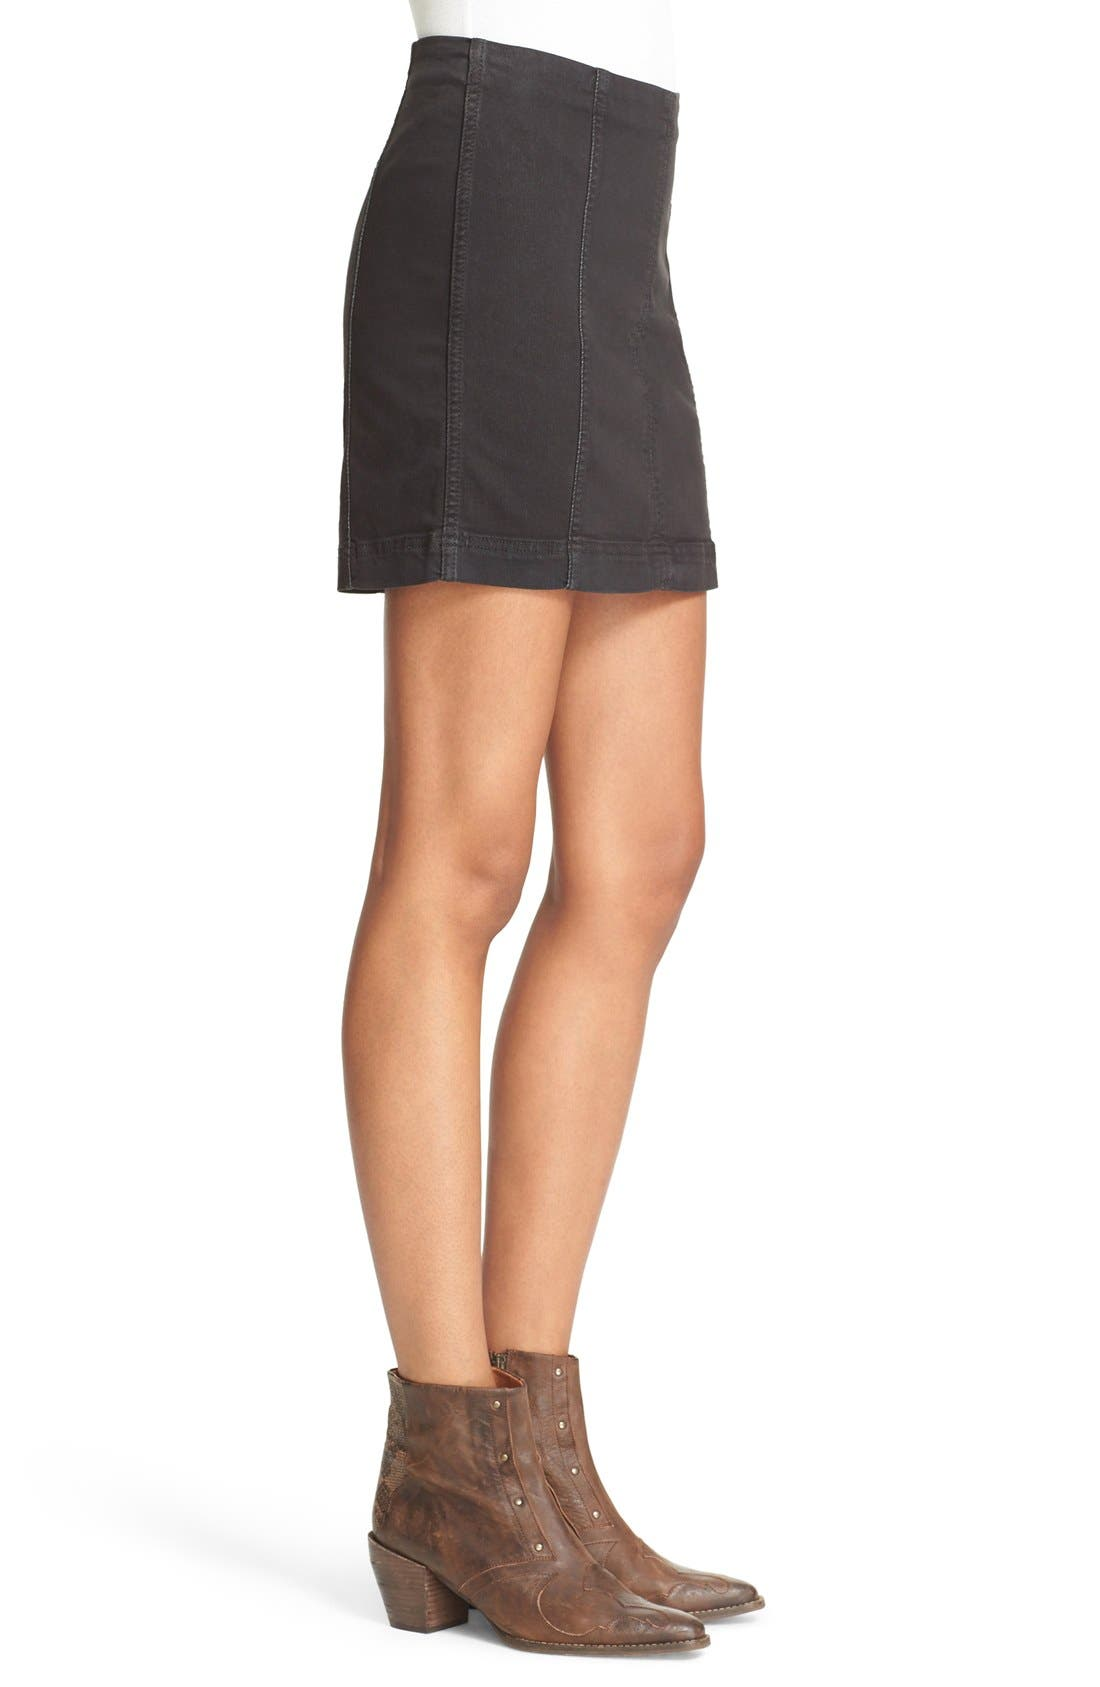 FREE PEOPLE, We the Free by Free People Modern Denim Miniskirt, Alternate thumbnail 7, color, 001